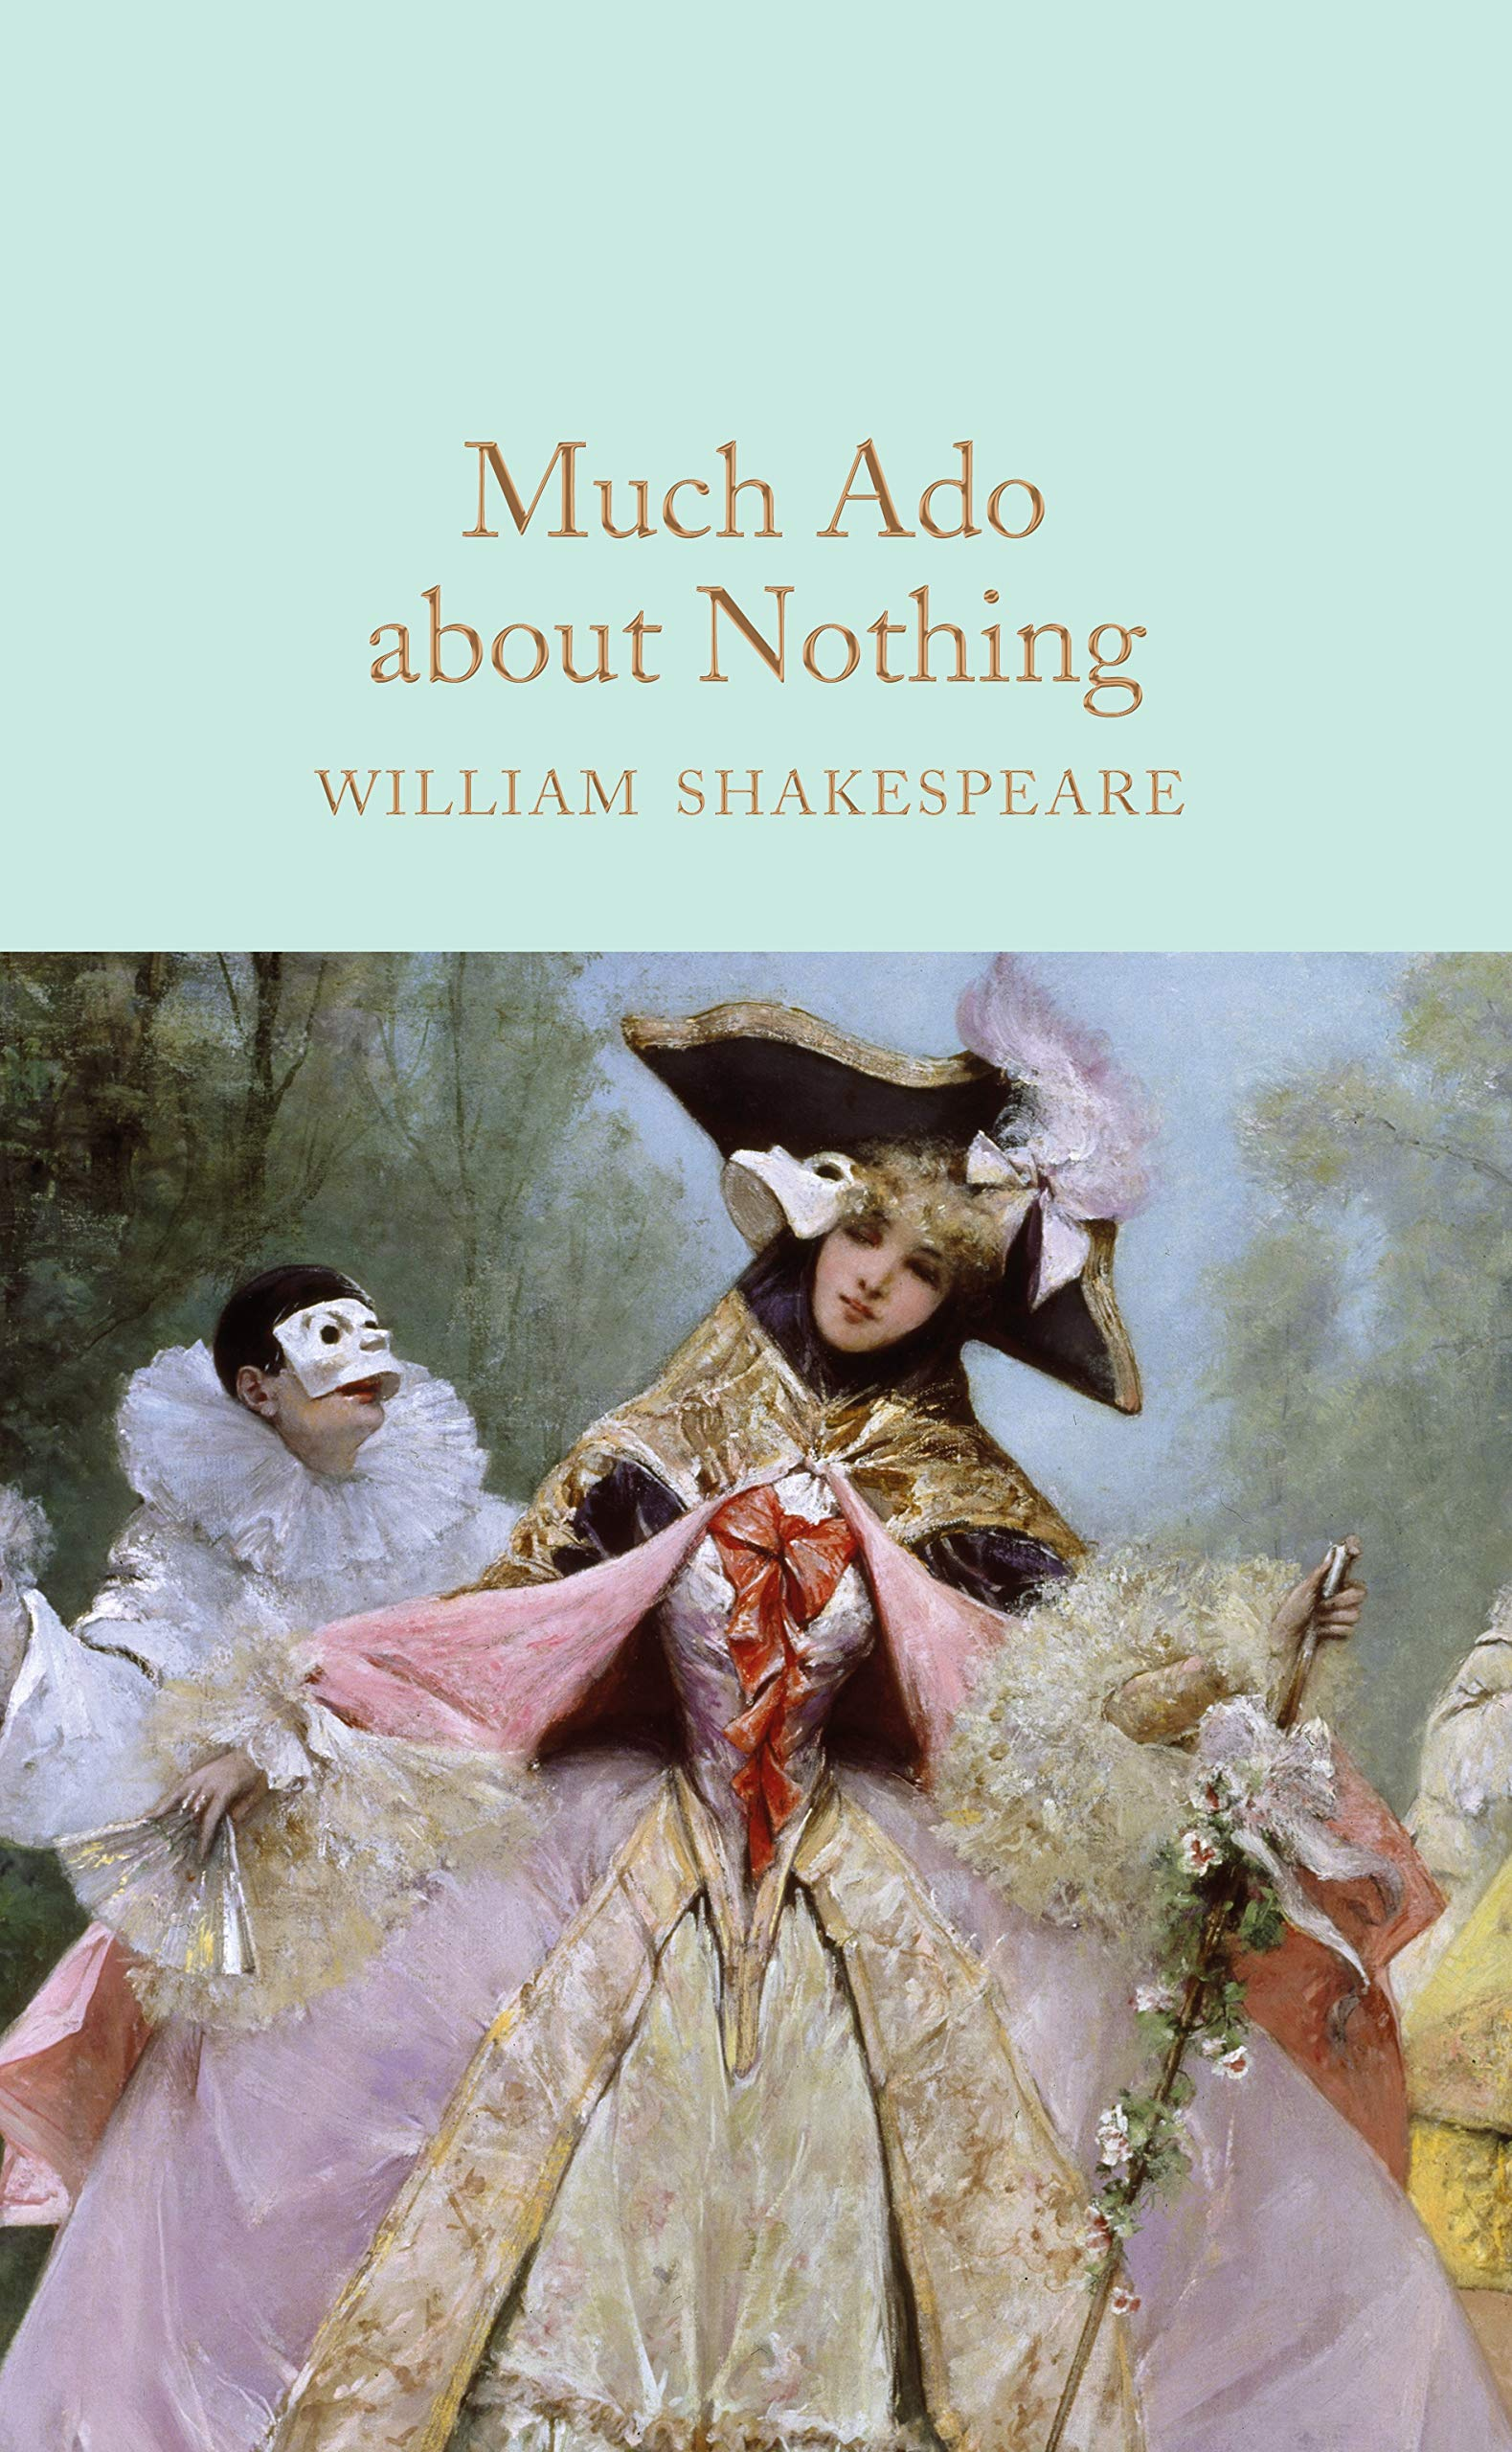 Much Ado About Nothing  Macmillan Collector's Library Band 192